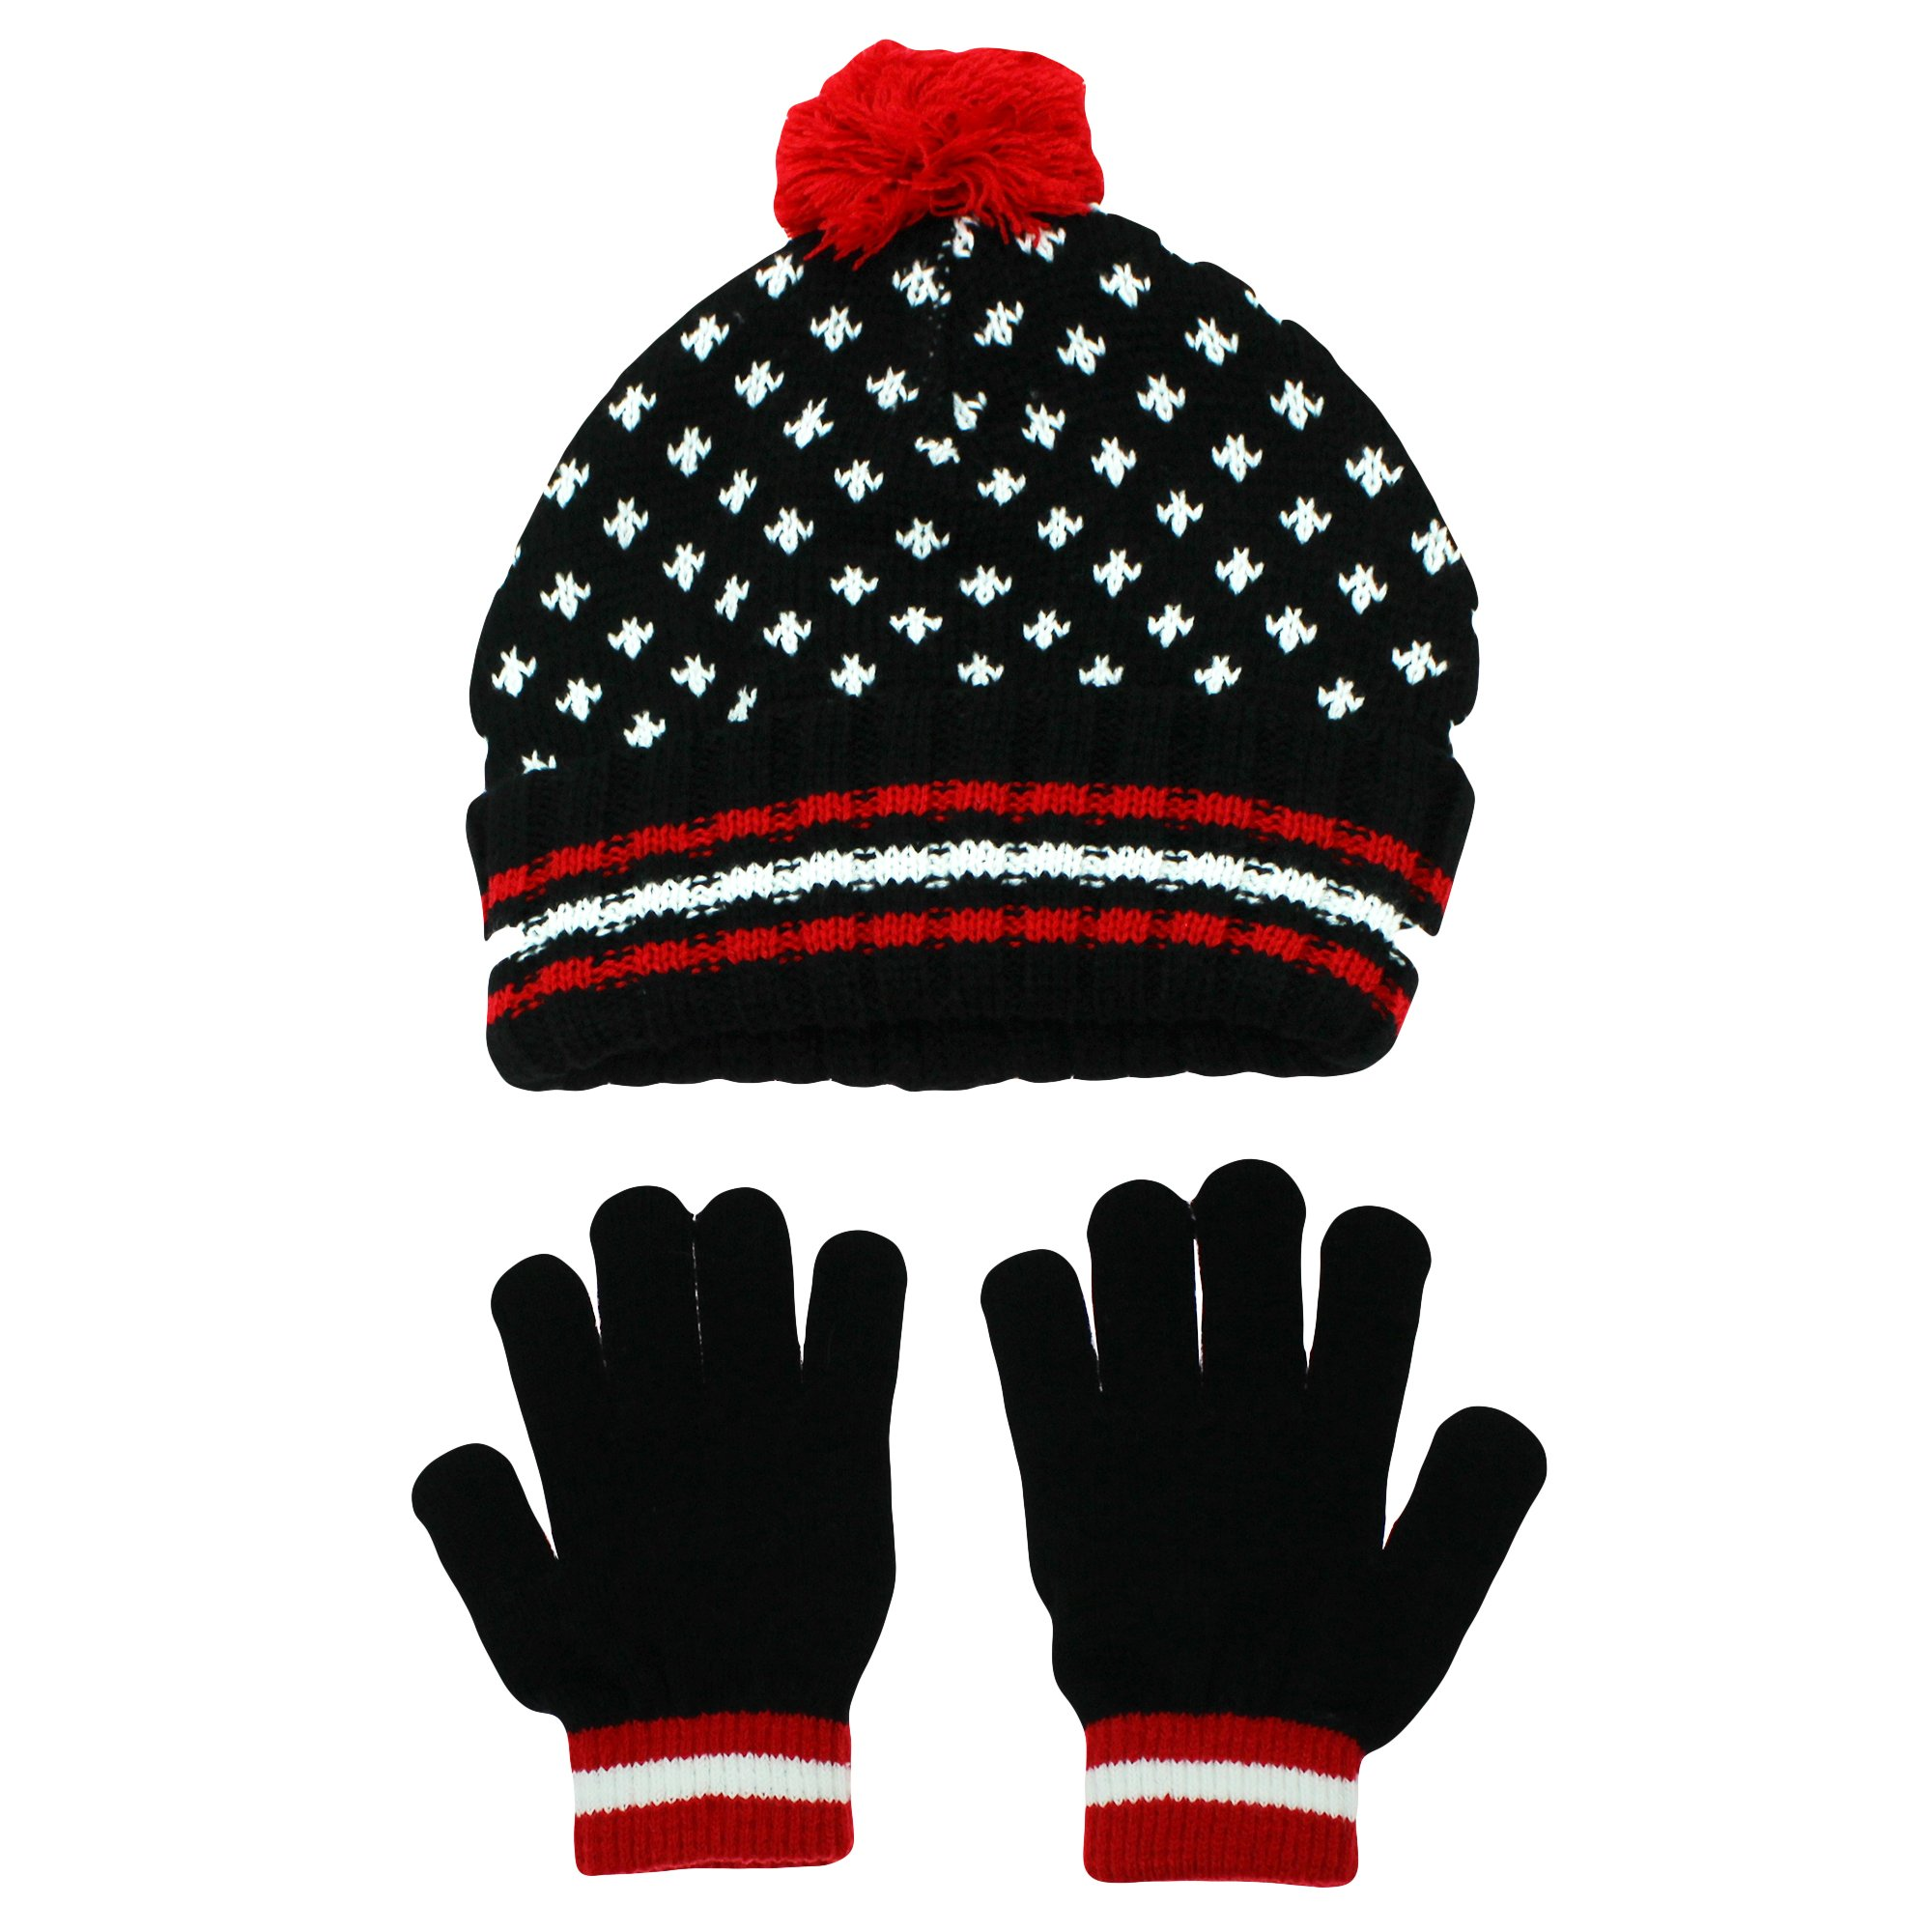 d4a6ffe99 Cheap Red And Black Beanie, find Red And Black Beanie deals on line ...